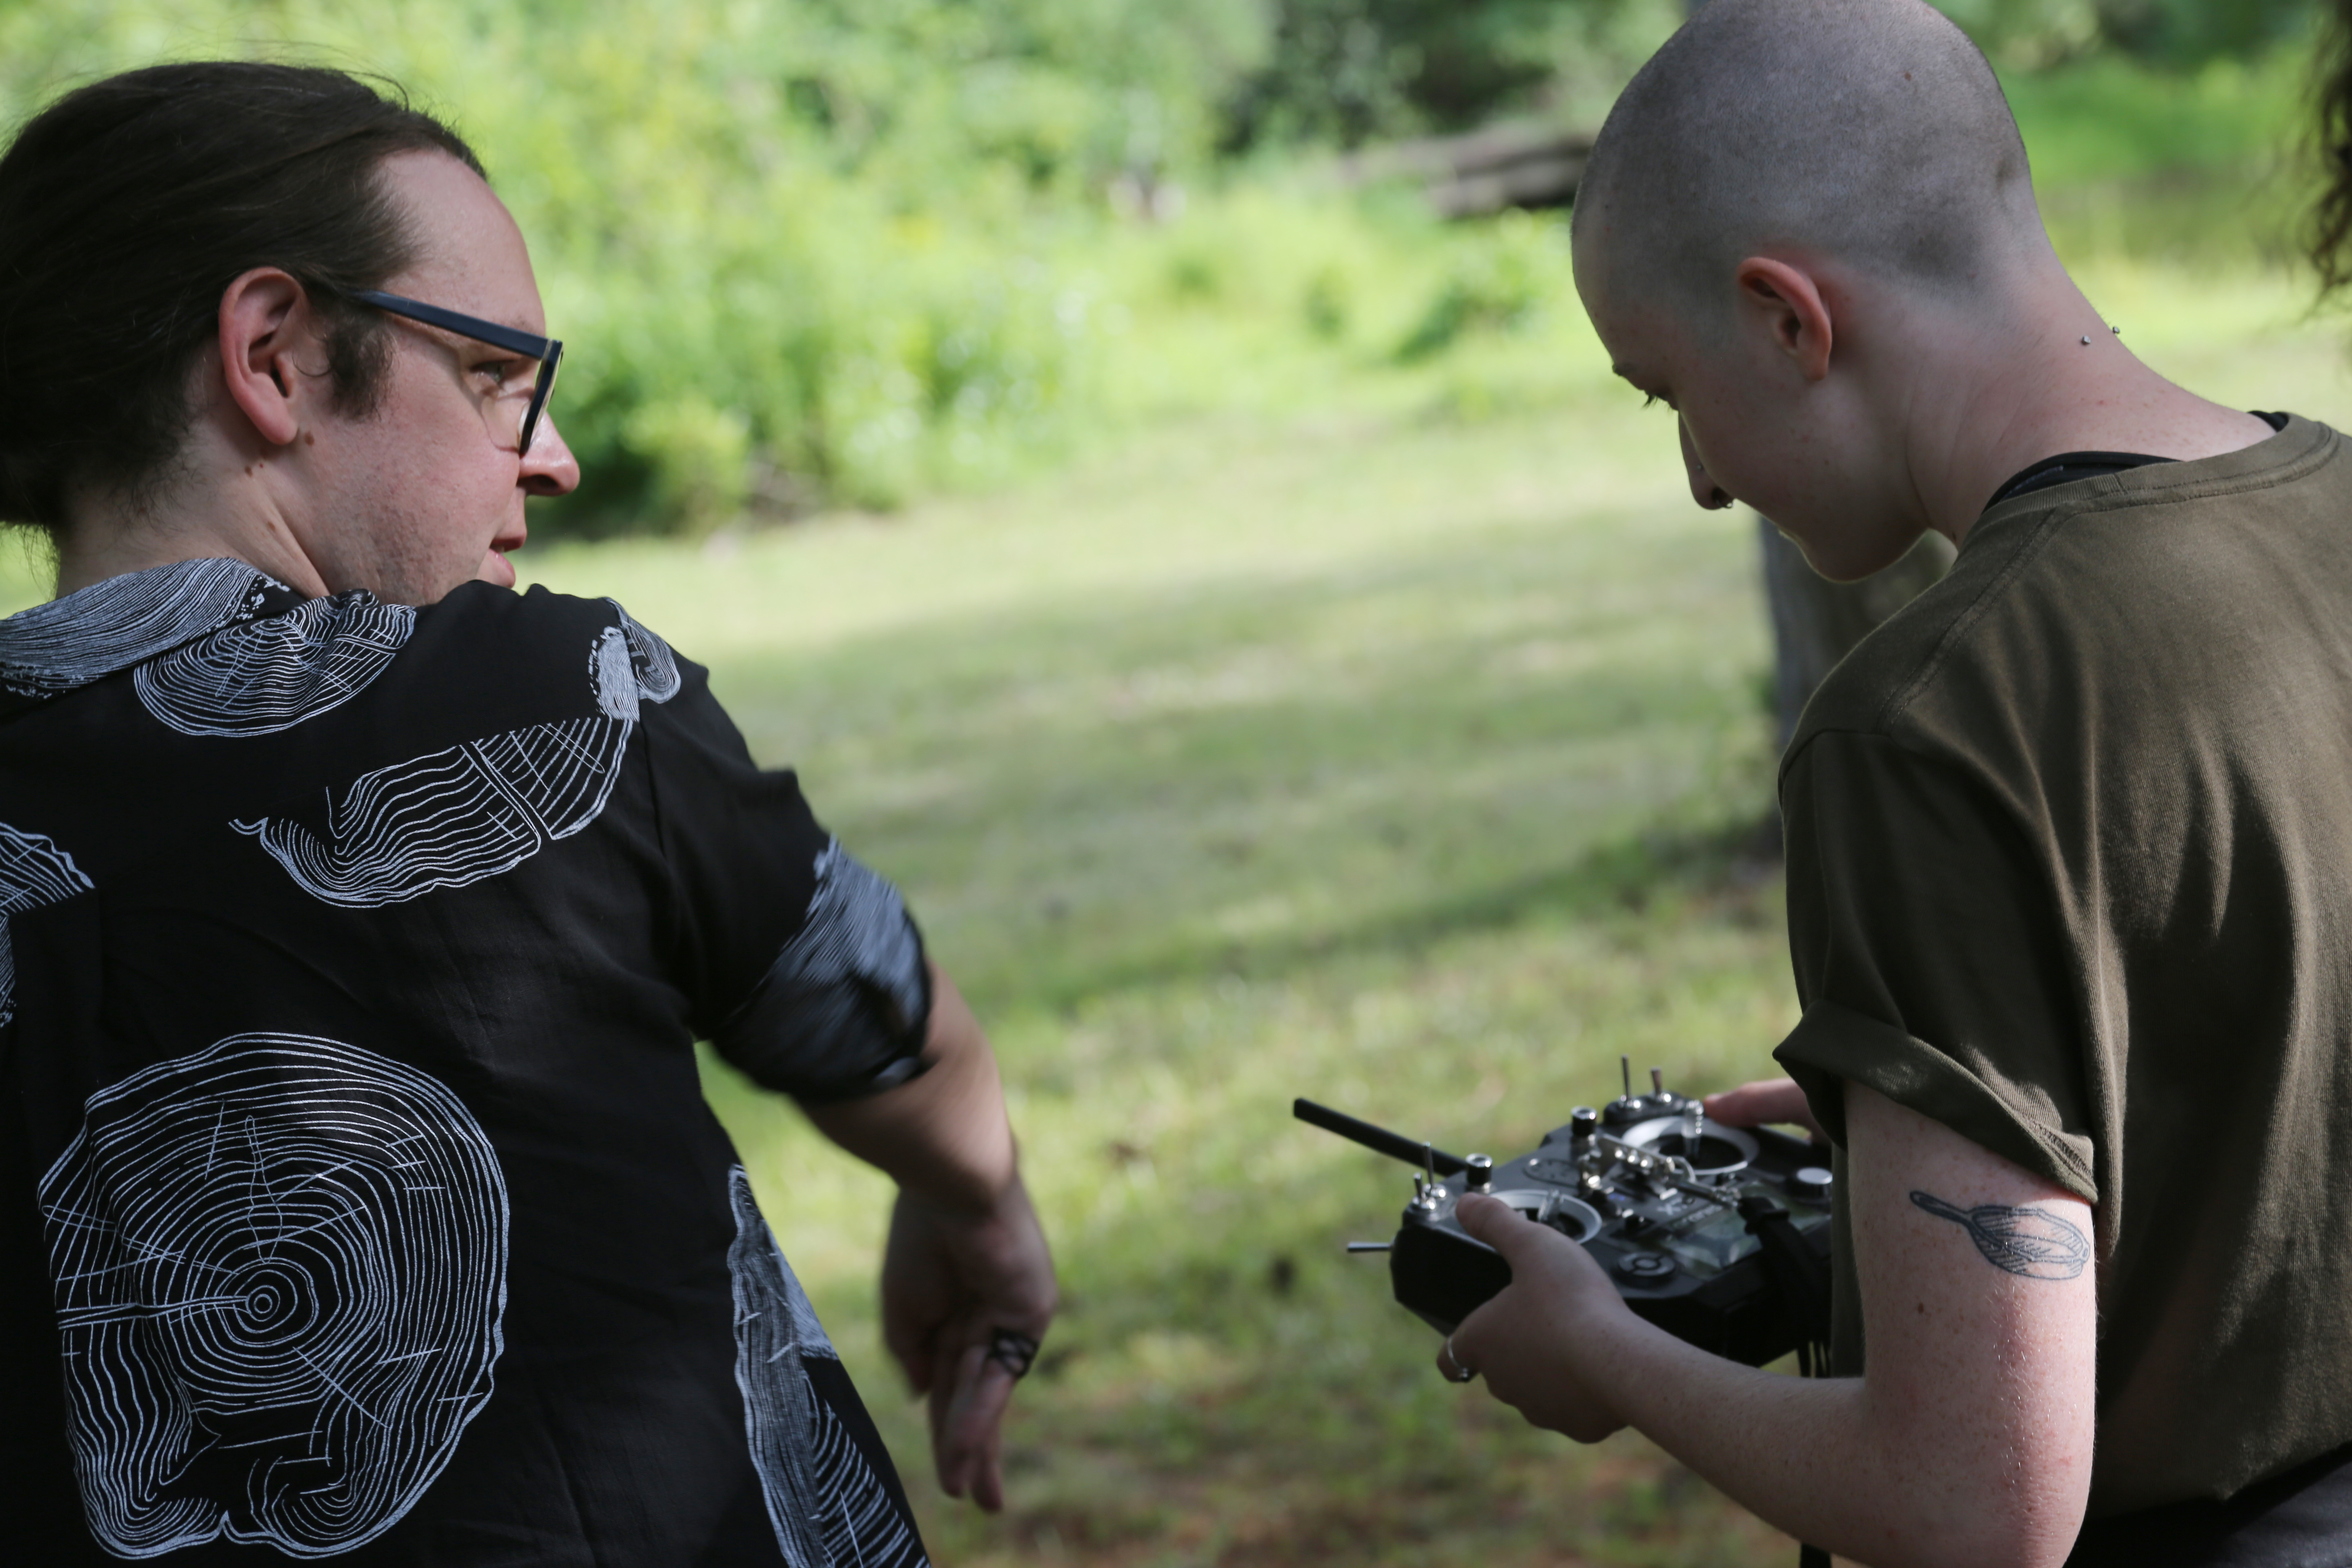 Flight Instruction at the Aerial Actor Drone Workshop